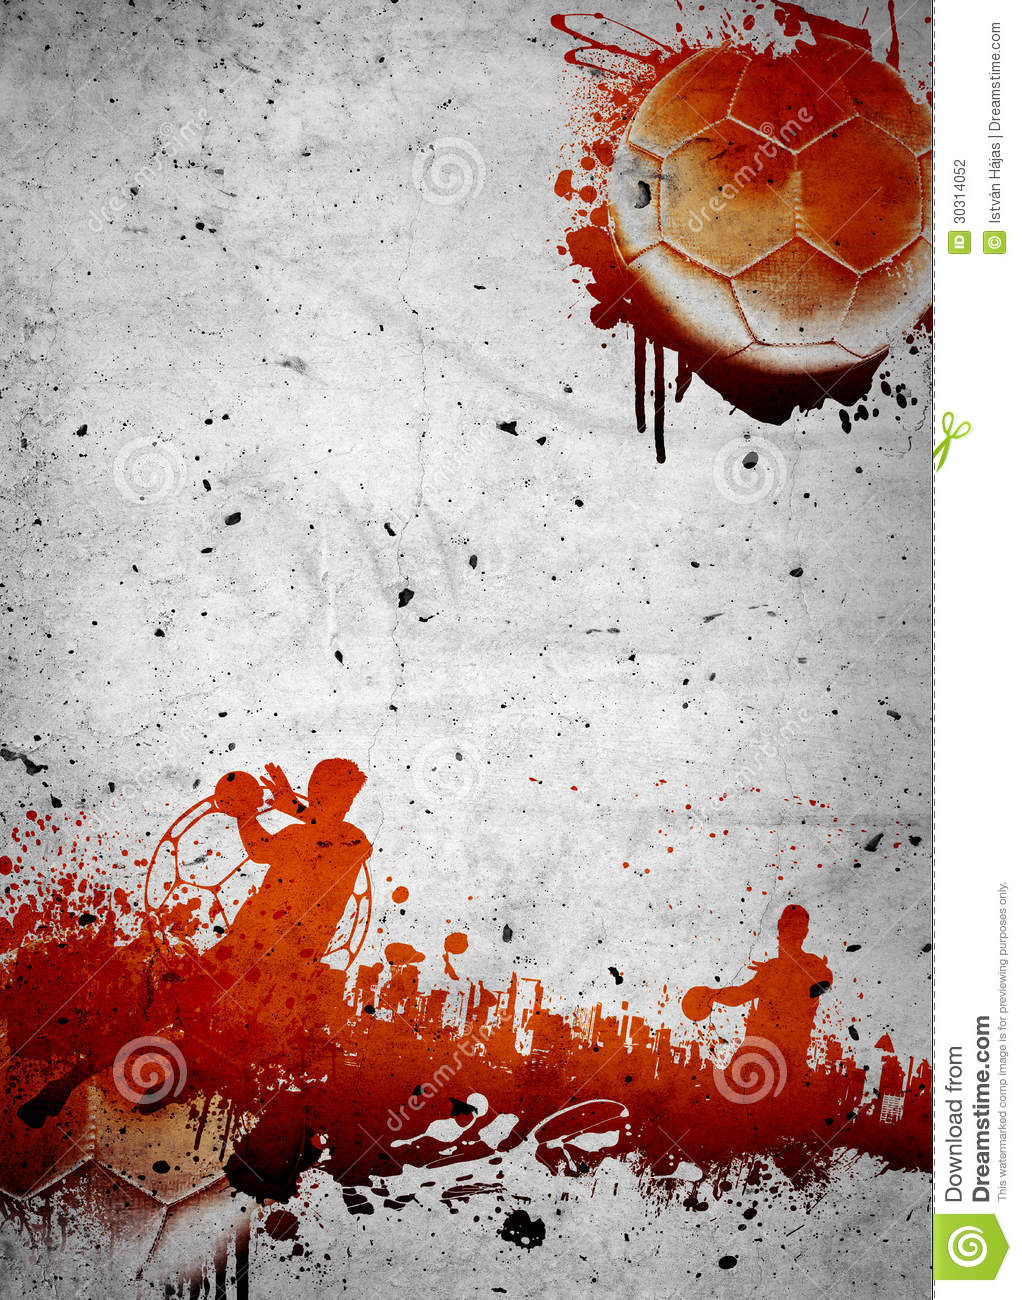 handball background stock illustration  image of abstract